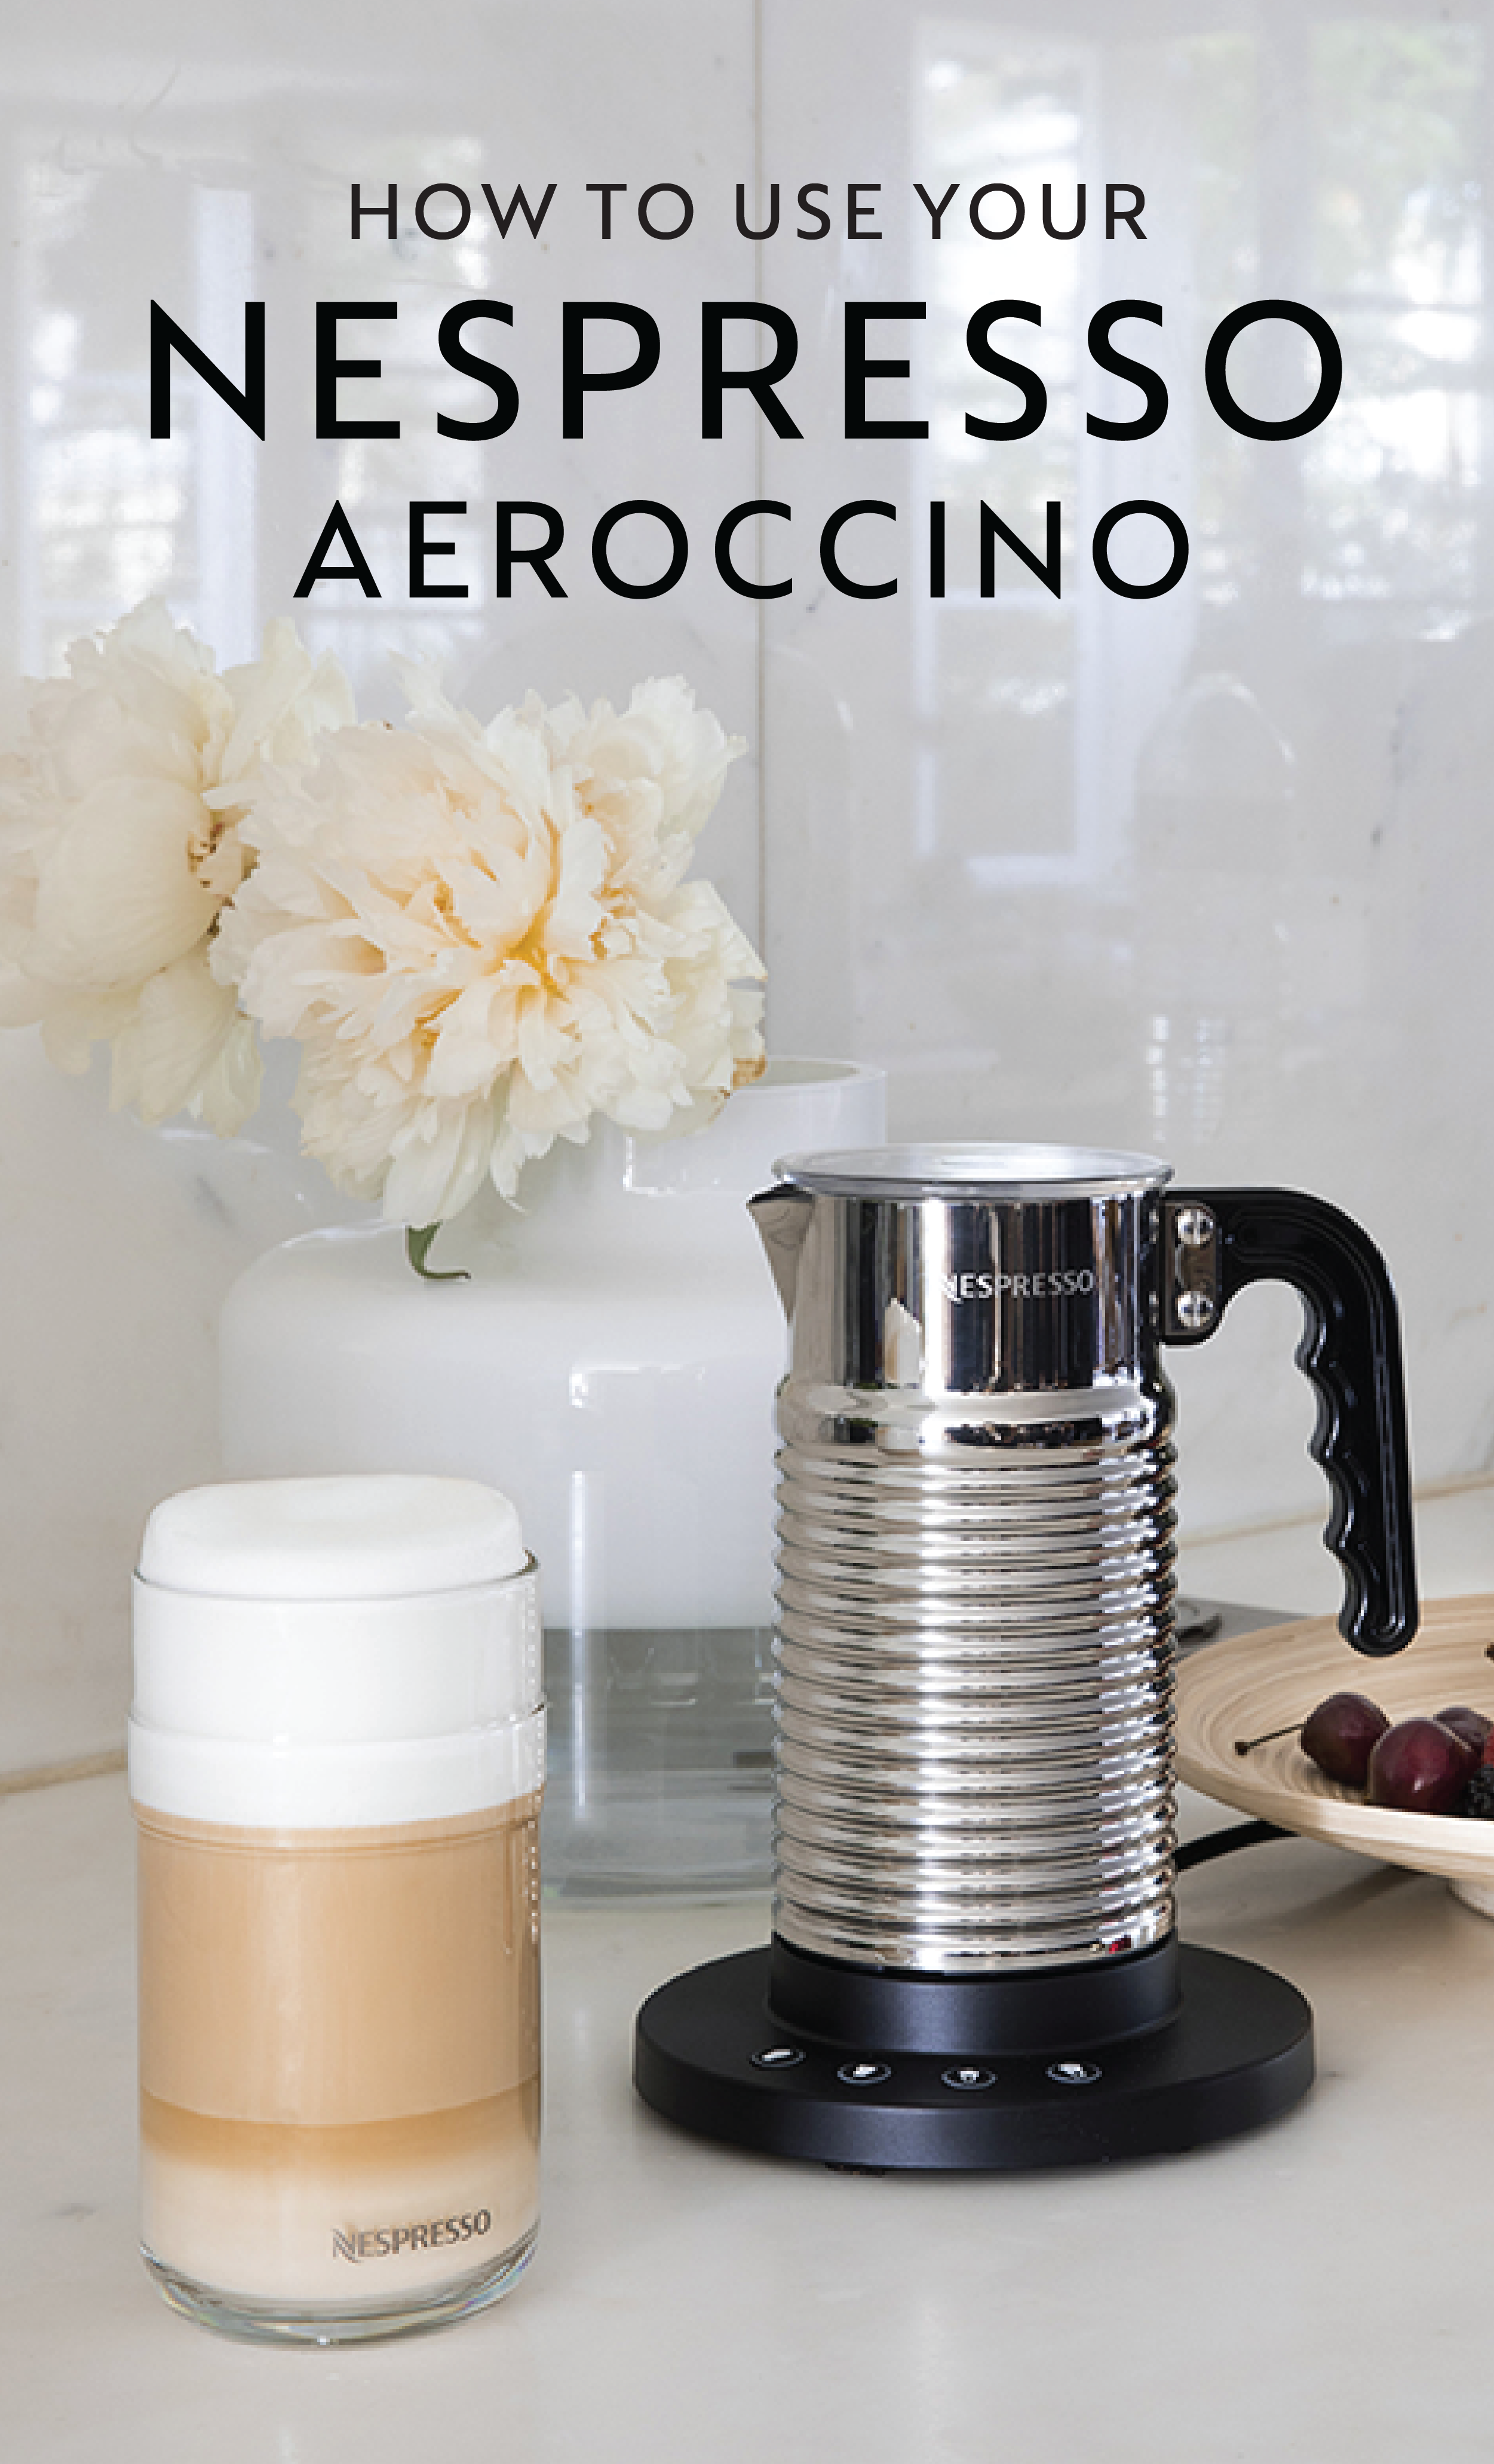 Amplify Your Morning Coffee Ritual With This Easy How To Guide For